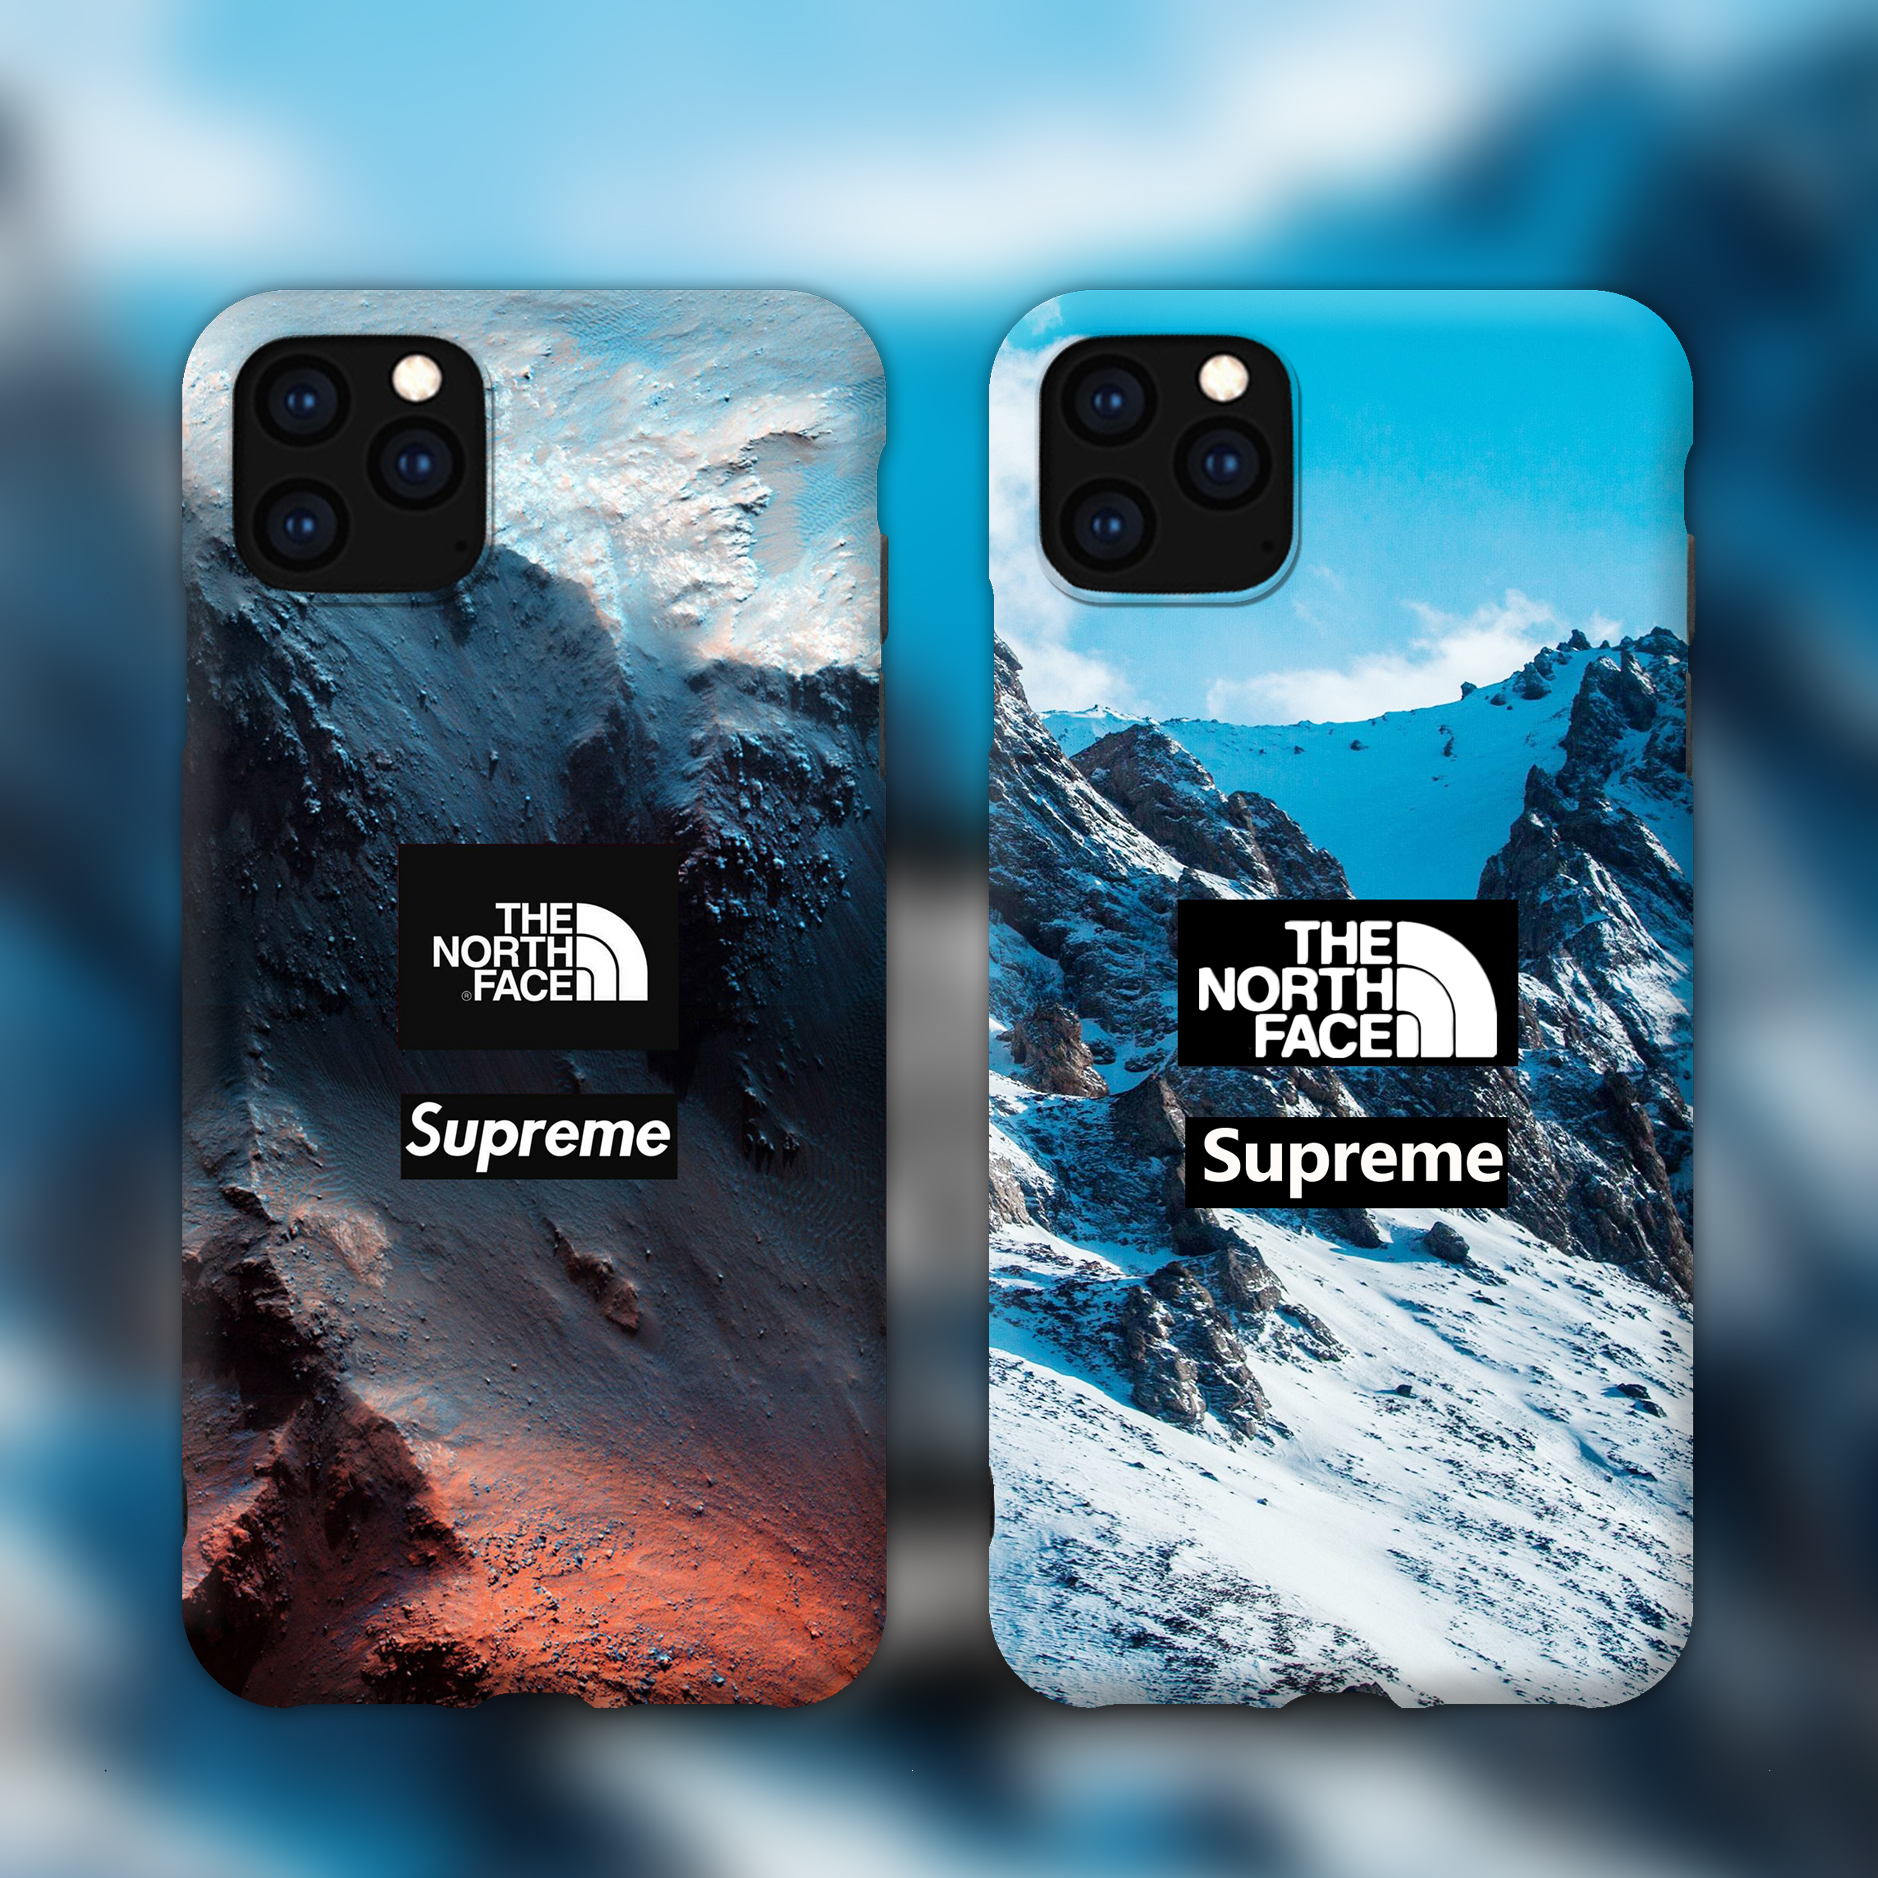 The North Face supreme iphone 11 proケース